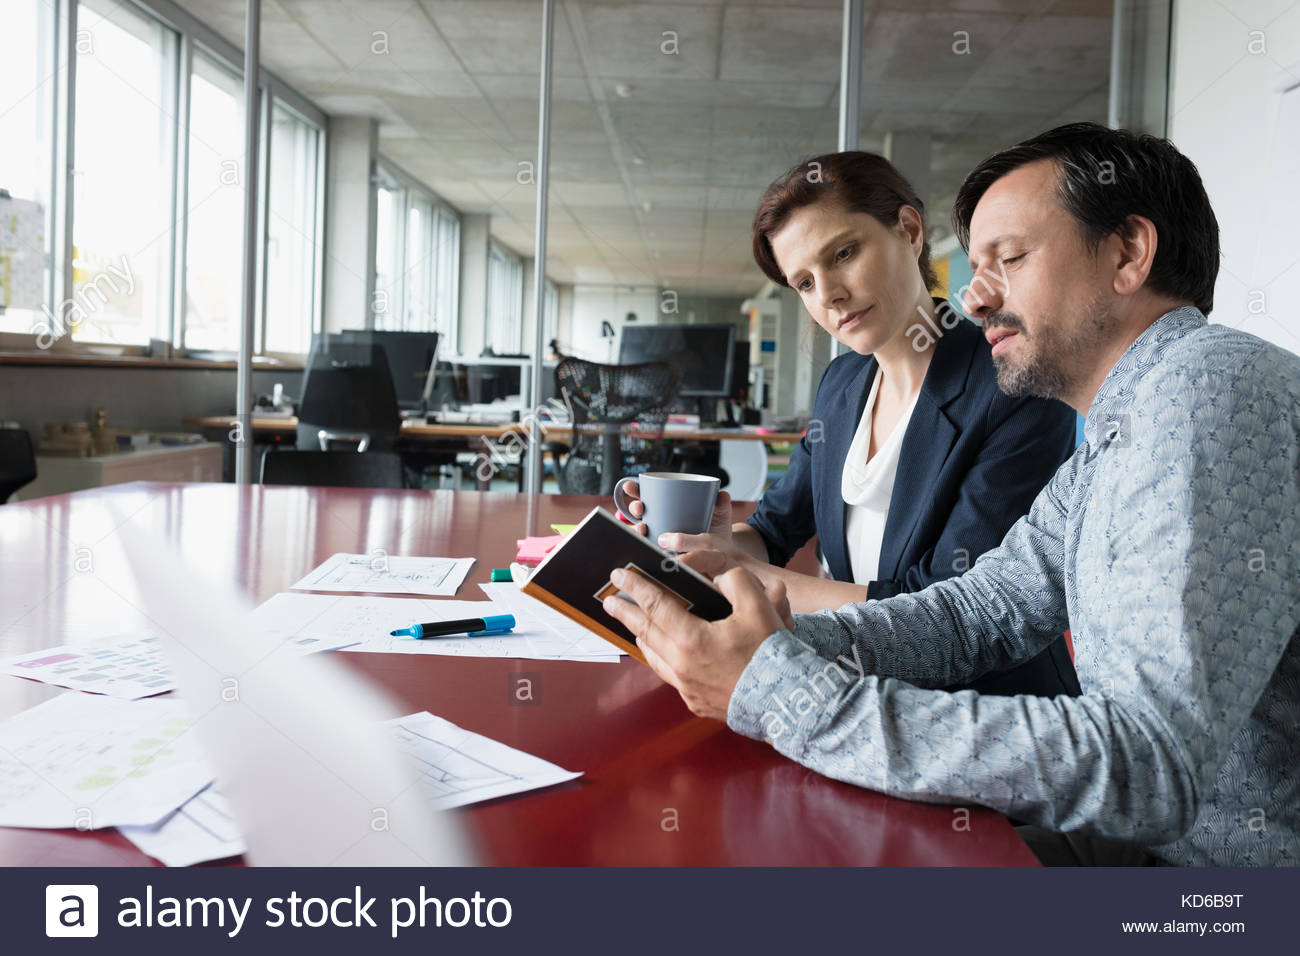 Business people reviewing paperwork and notes in conference room meeting - Stock Image